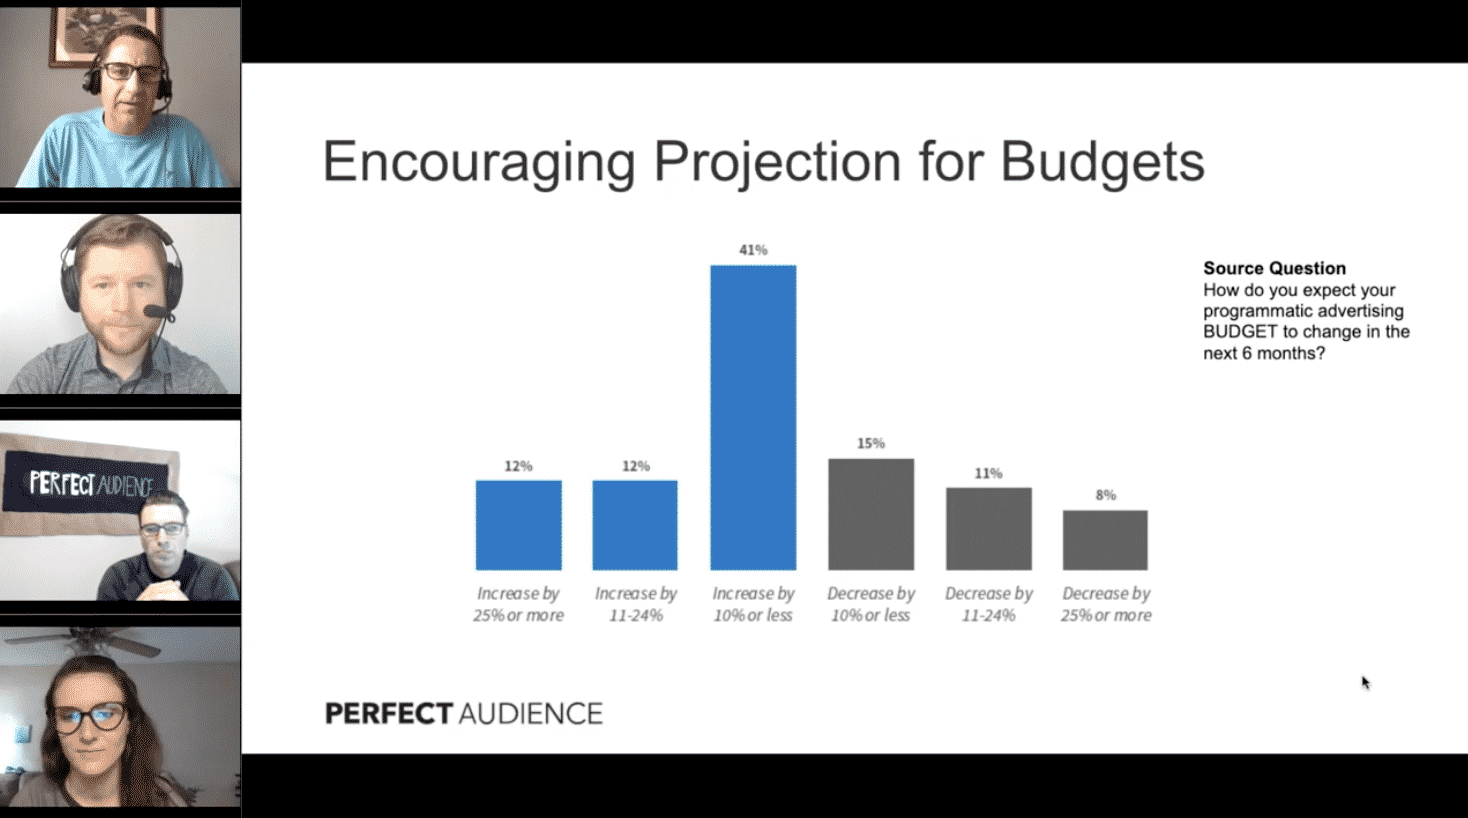 New Research on Recent Changes in Programmatic Advertising